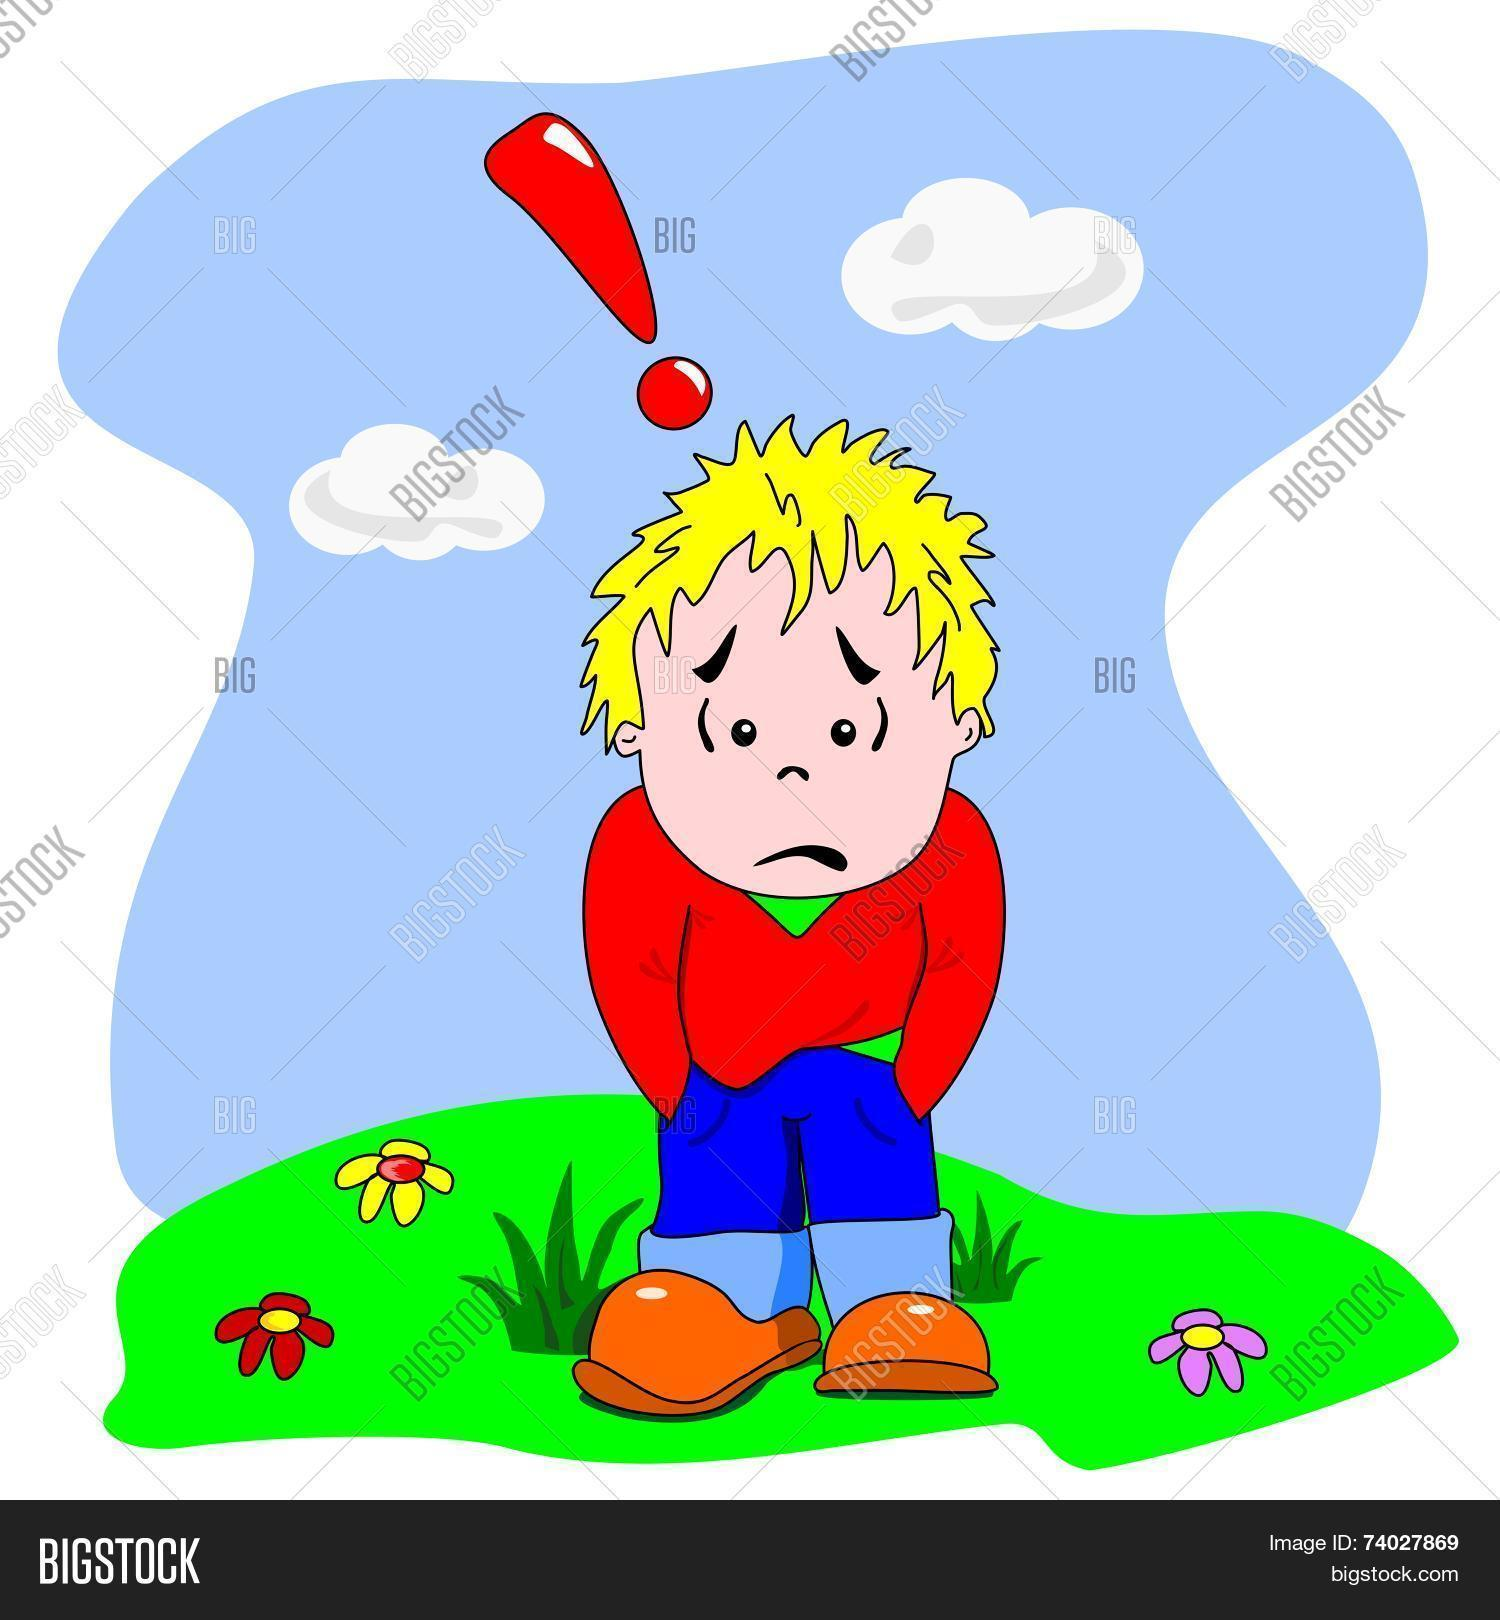 A cartoon vector of a sad disappointed young boy